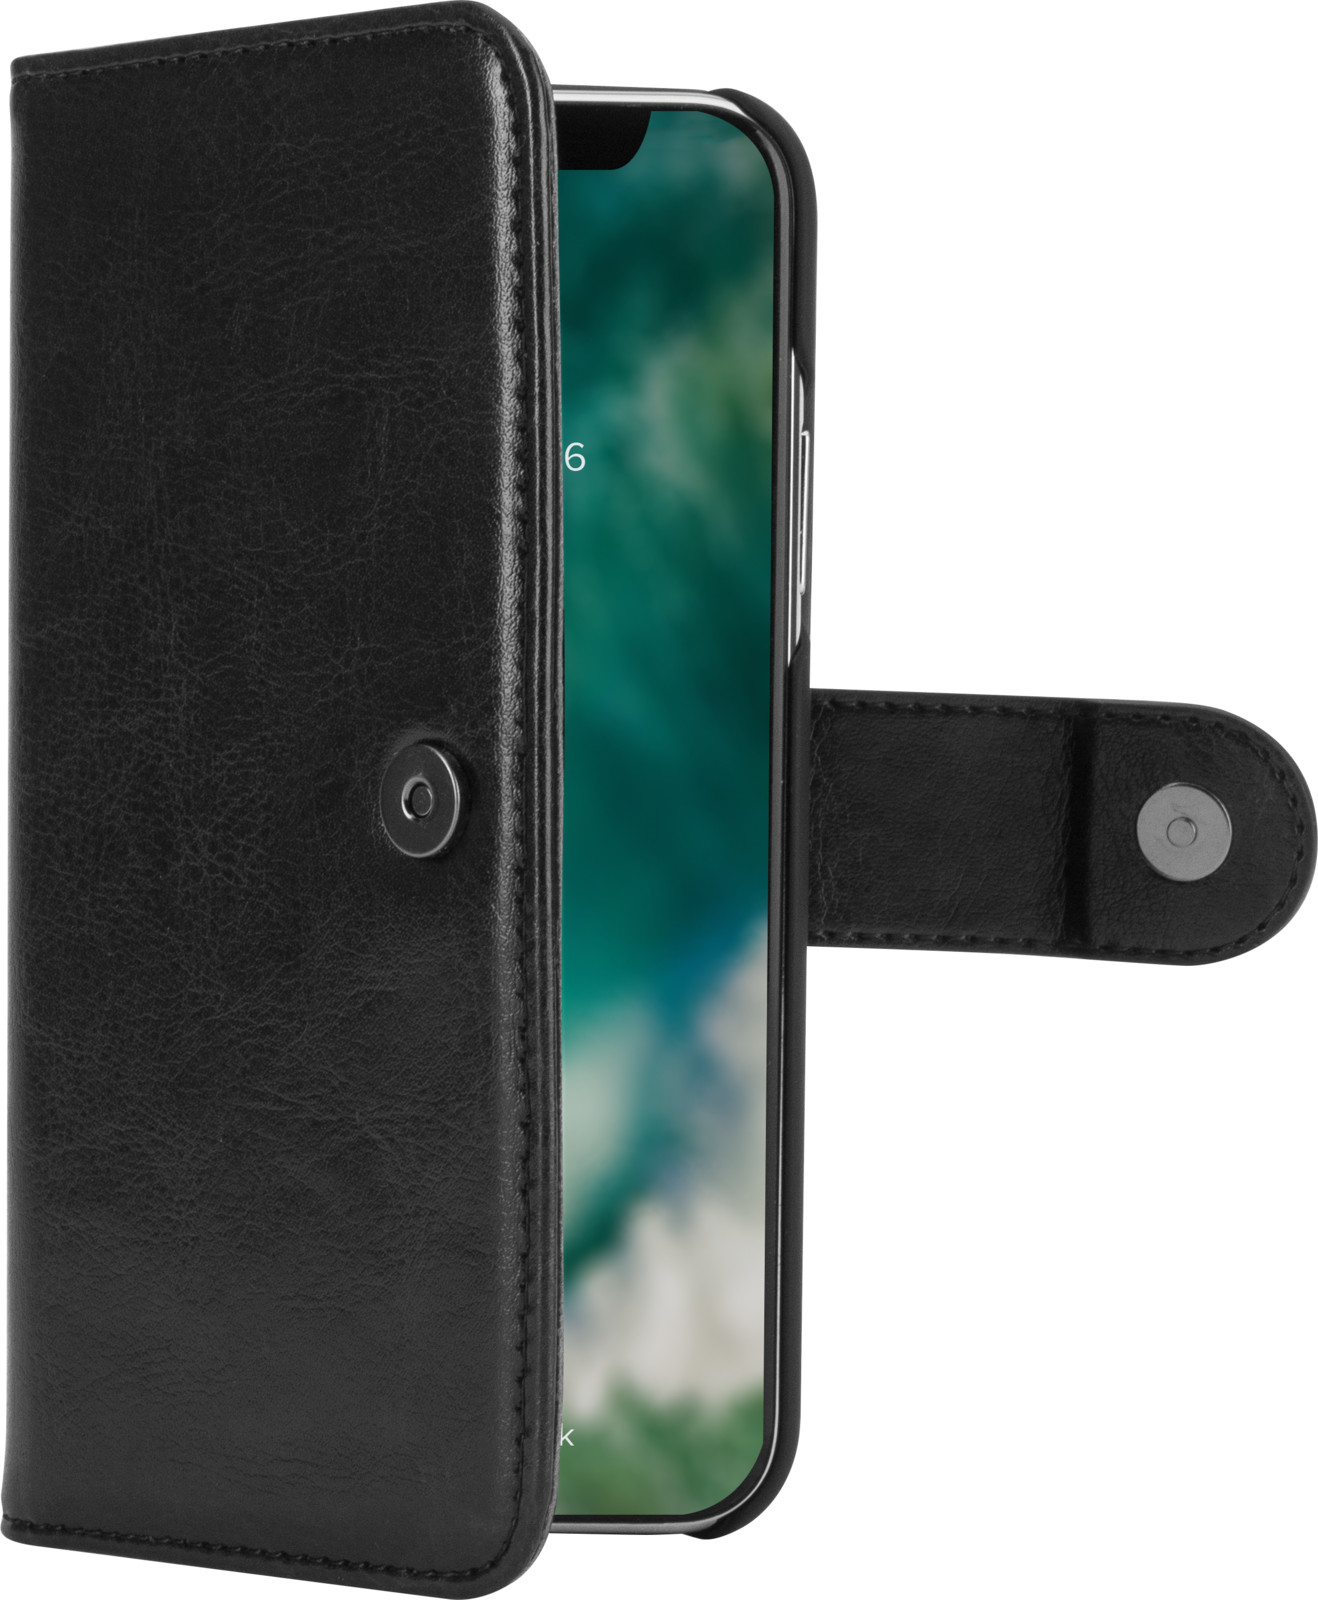 Xqisit Eman Wallet (iPhone X/Xs)